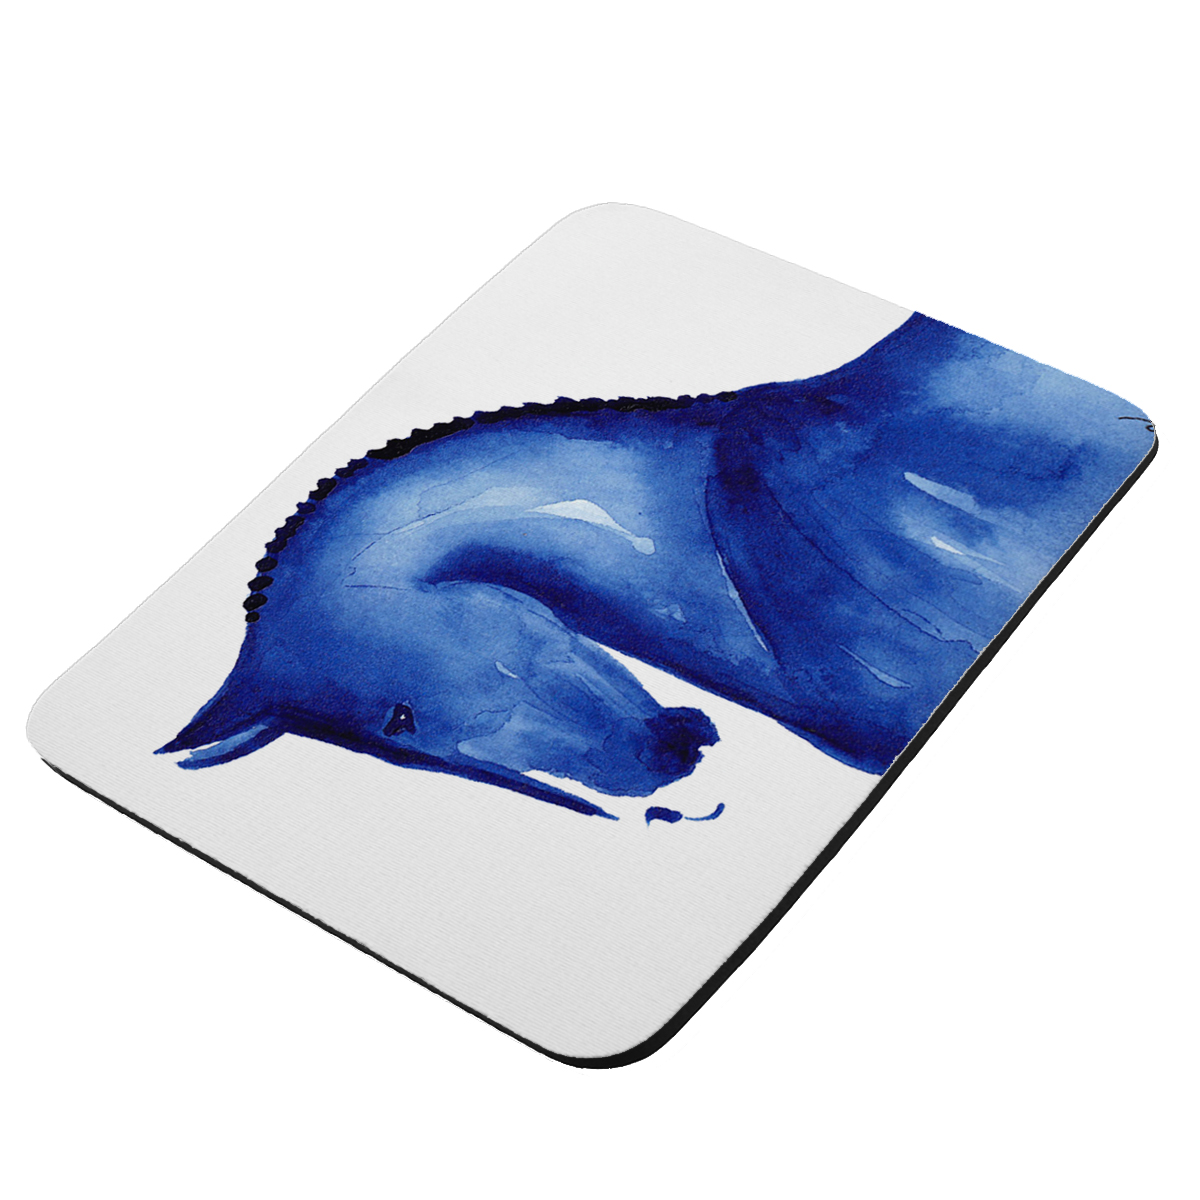 Warmblood Sports Horse in Blue Abstract Horse Art by Denise Every - KuzmarK Mousepad / Hot Pad / Trivet